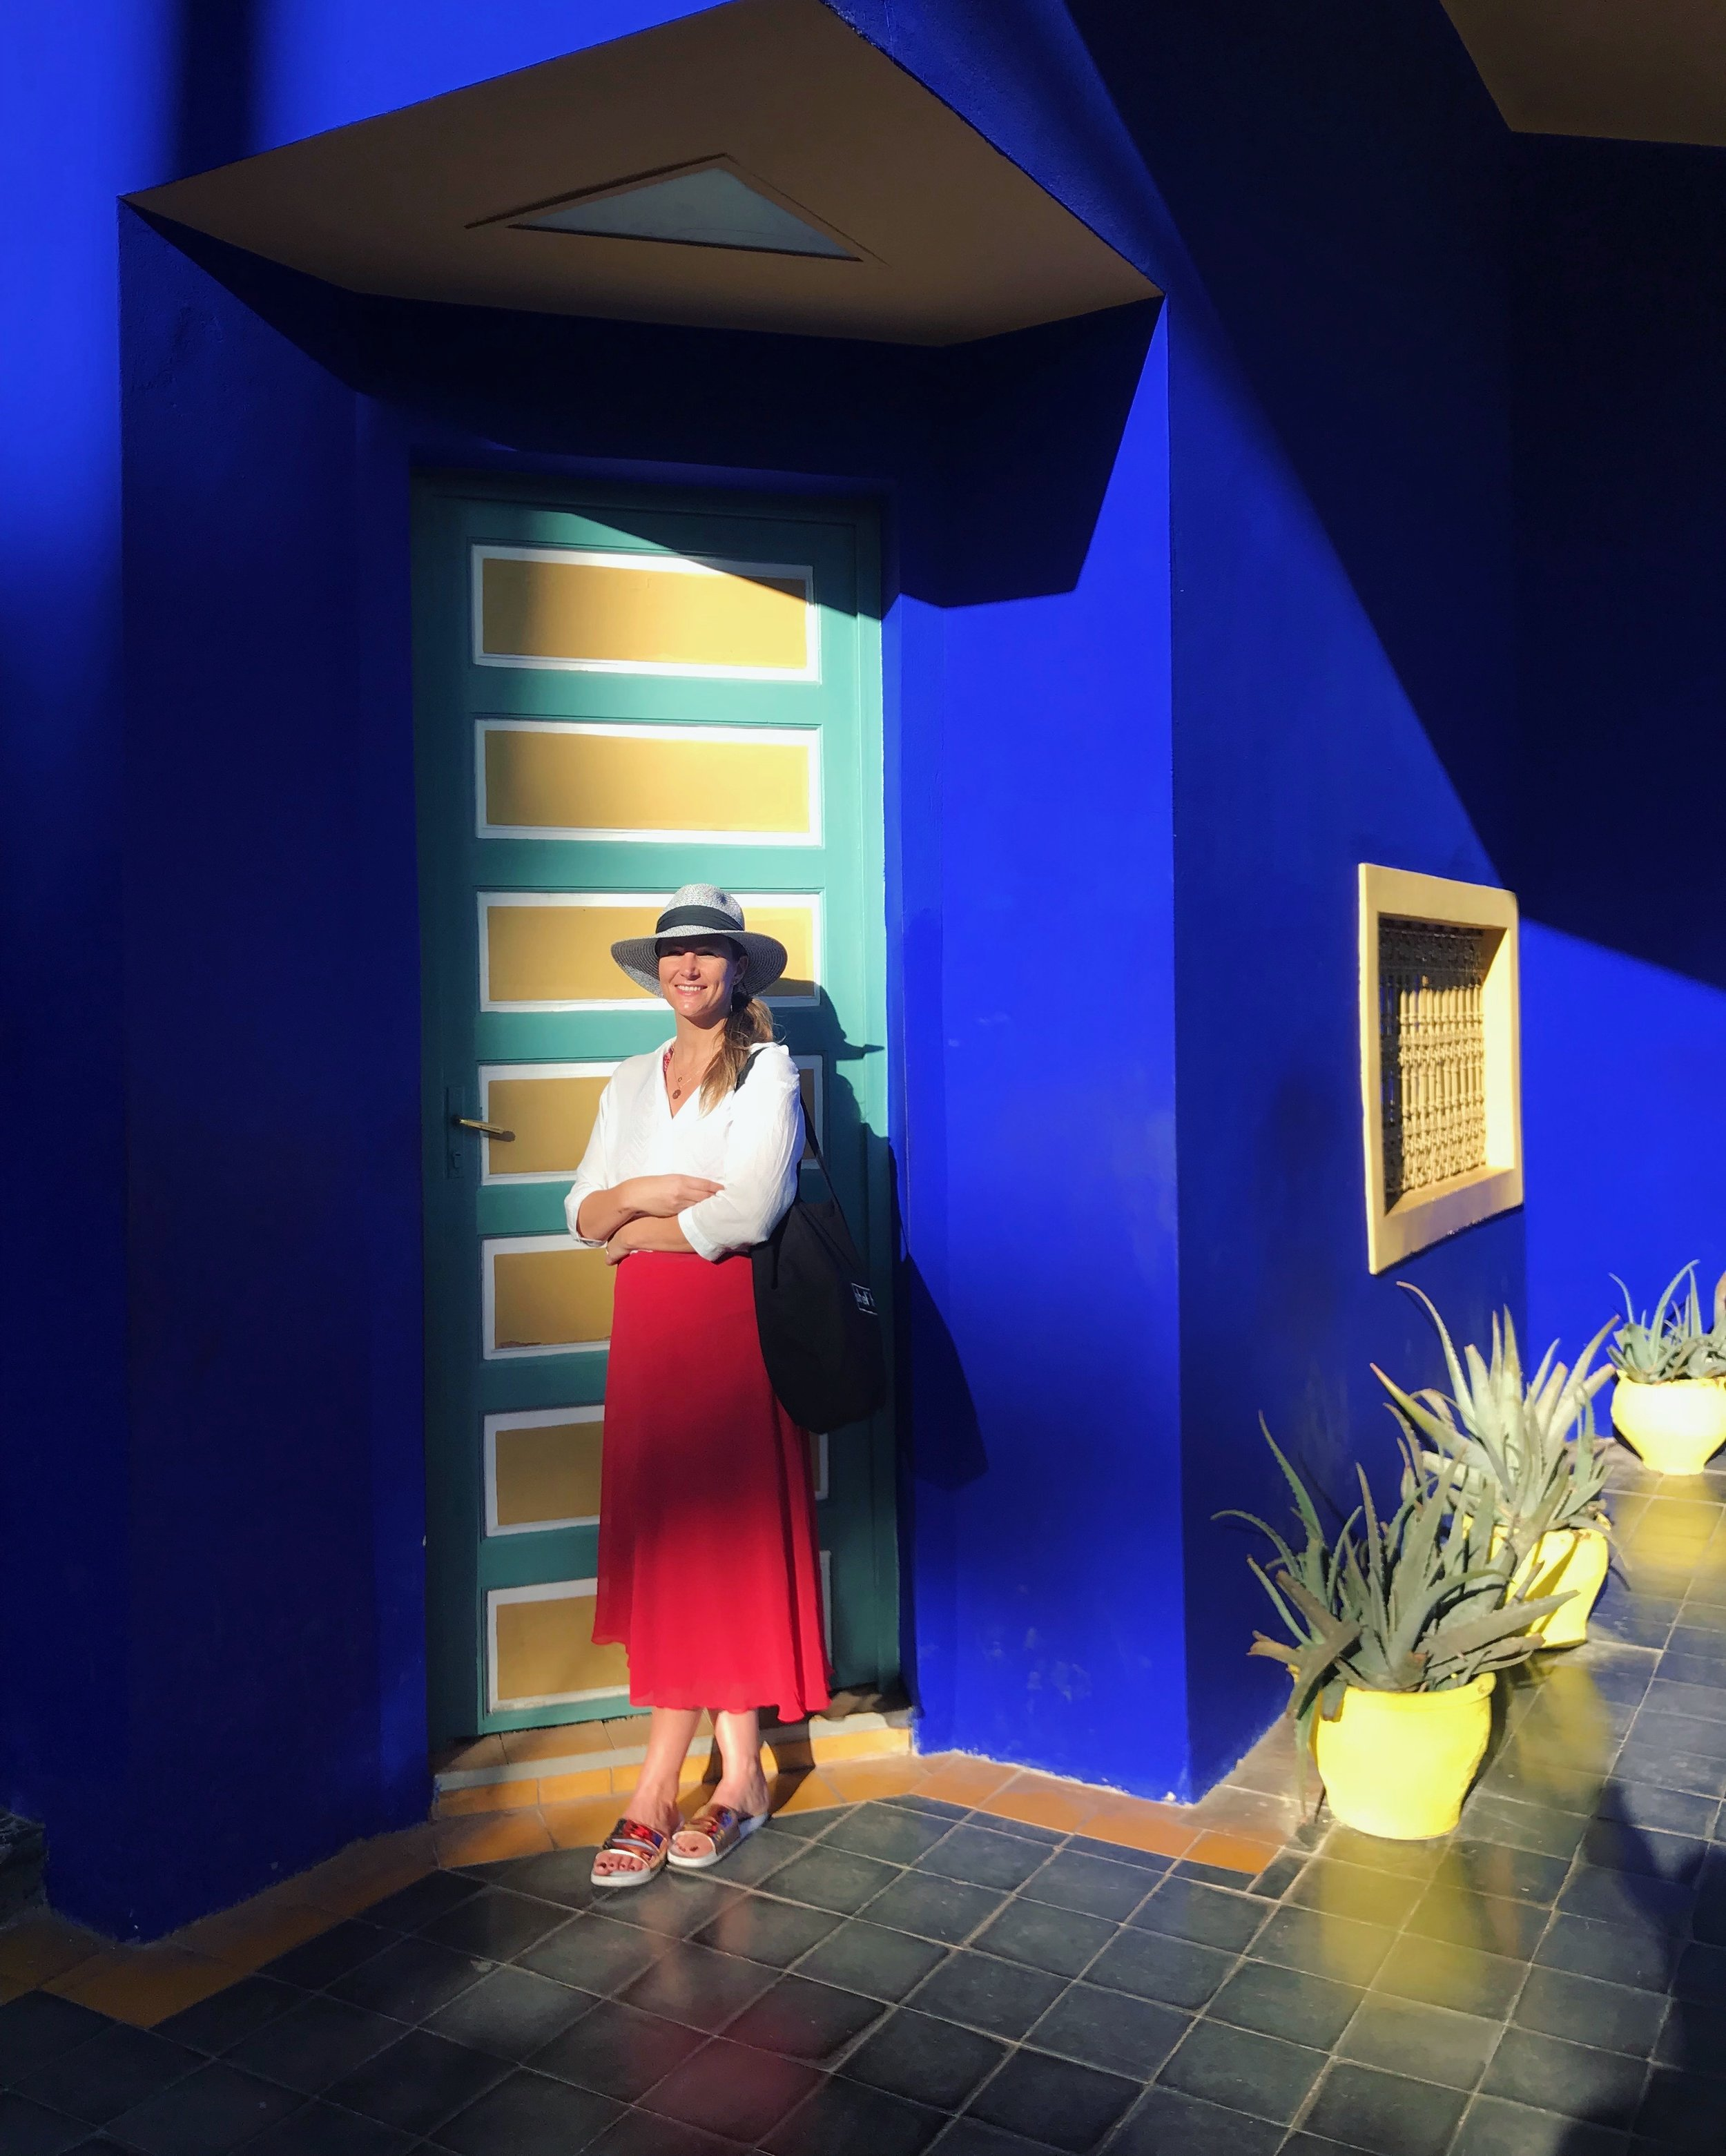 Colour popping:Life is just better in 'Majorelle blue'